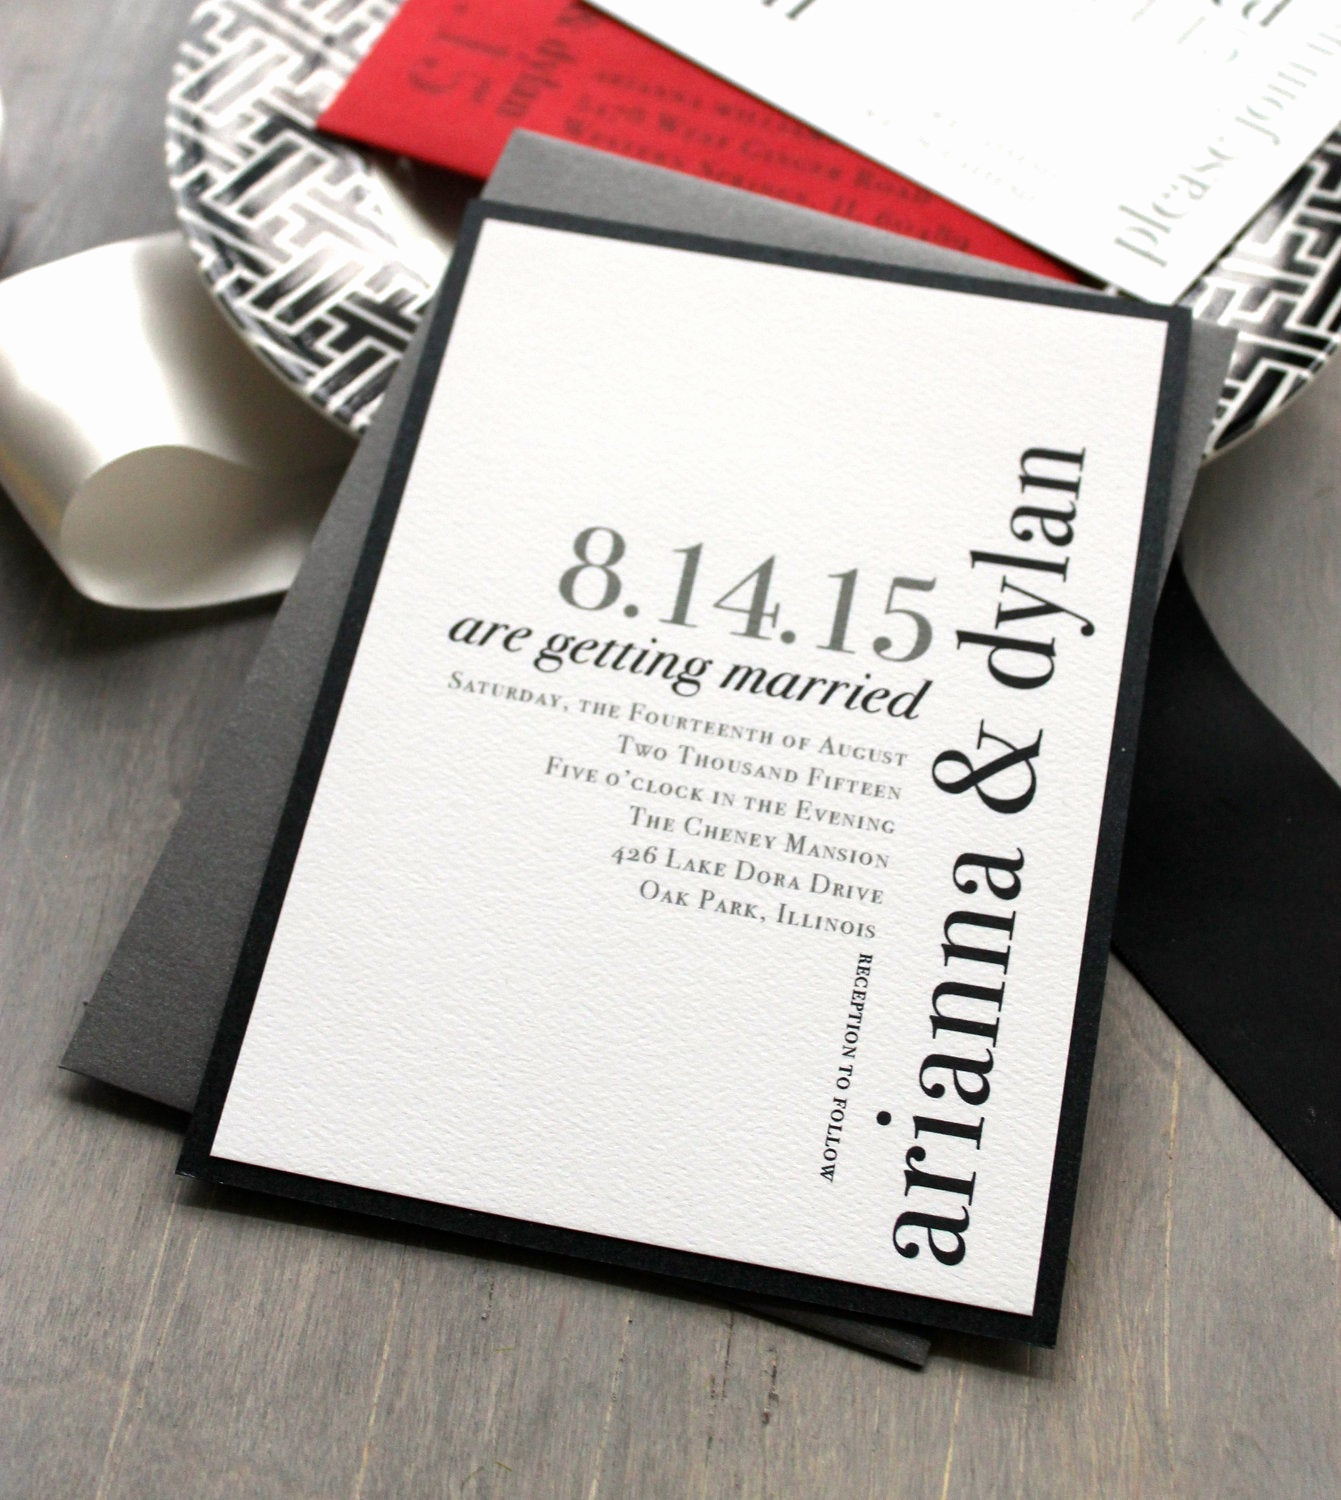 Modern Wedding Invitation Wording Lovely Modern Wedding Invitations Wedding Invitation Urban Chic